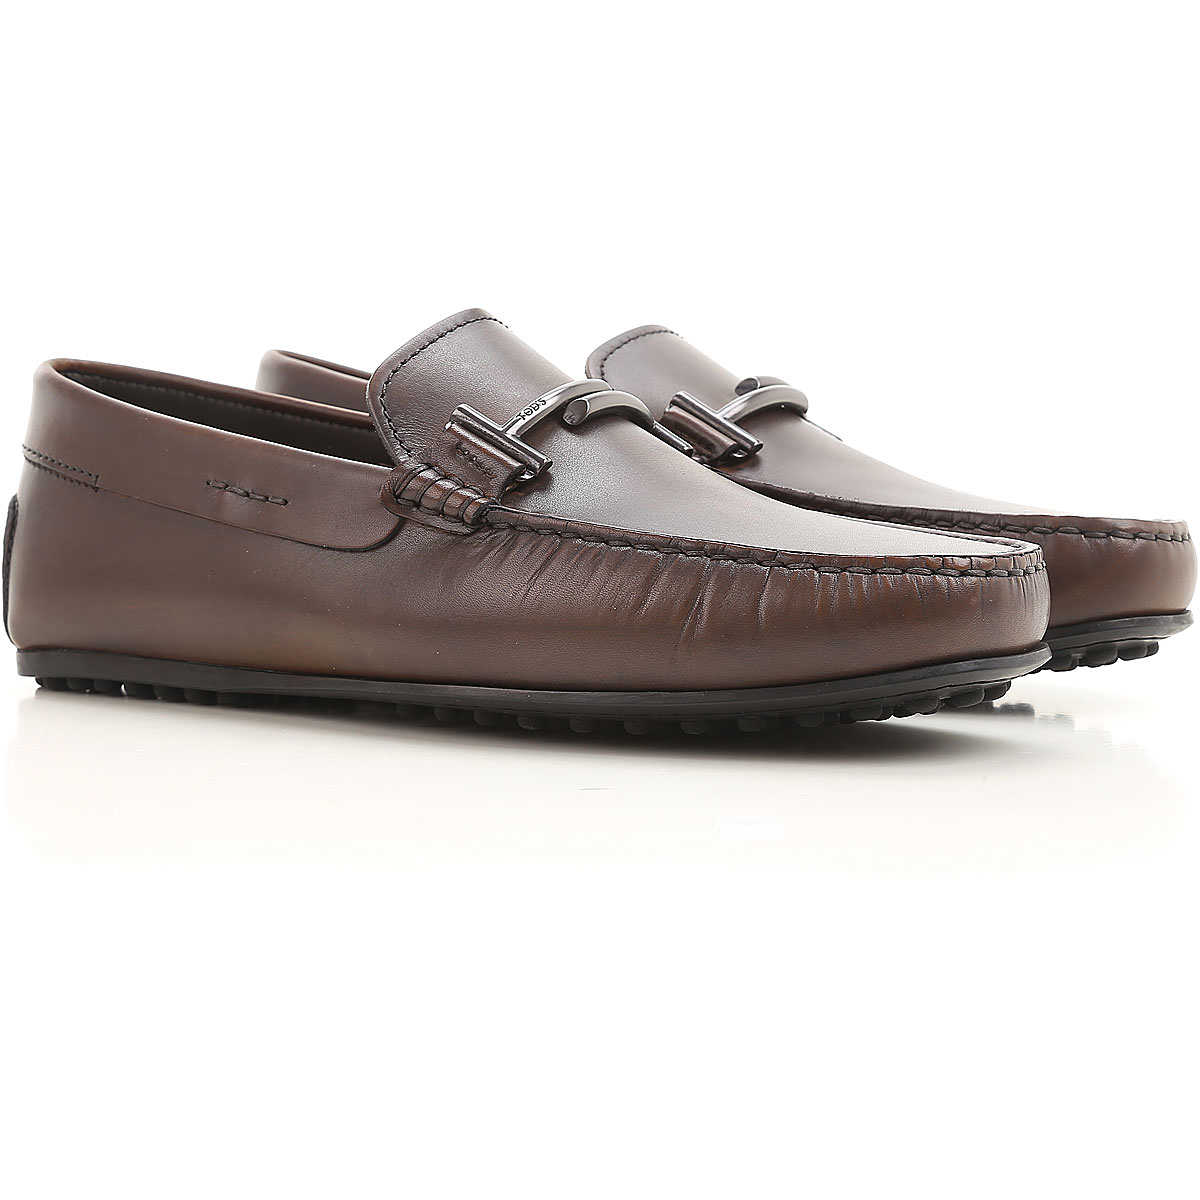 Tods Loafers for Men On Sale Bark brown - GOOFASH